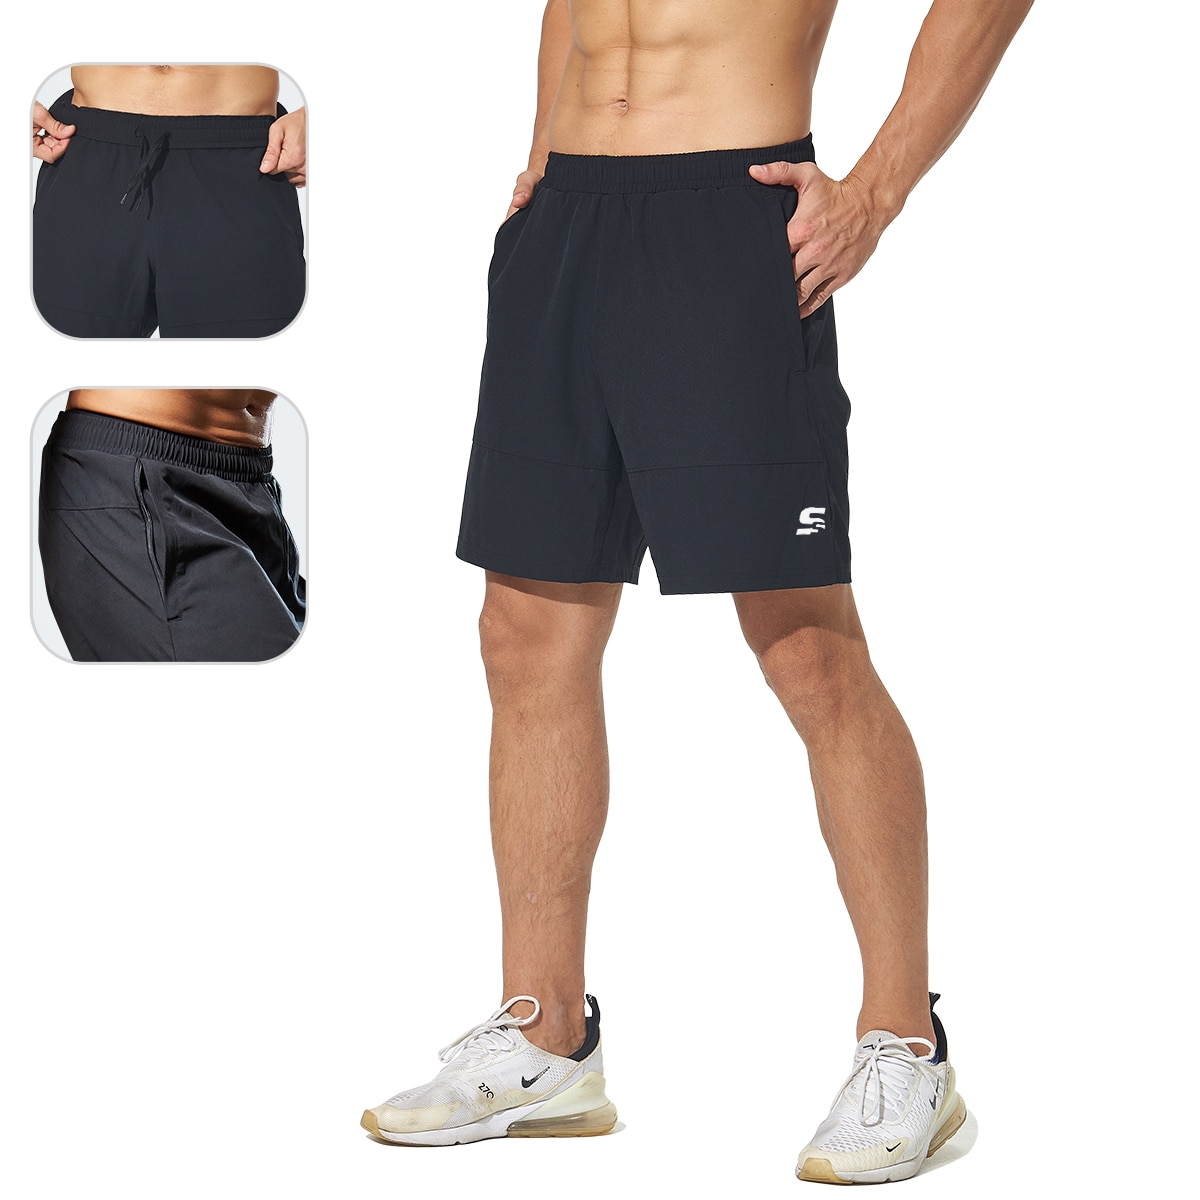 2 In 1 Shorts Men Running Shorts Quick Dry Workout Jogging Gym Fitness Sport Short Athletic Mens Running Sweatpants with Pockets